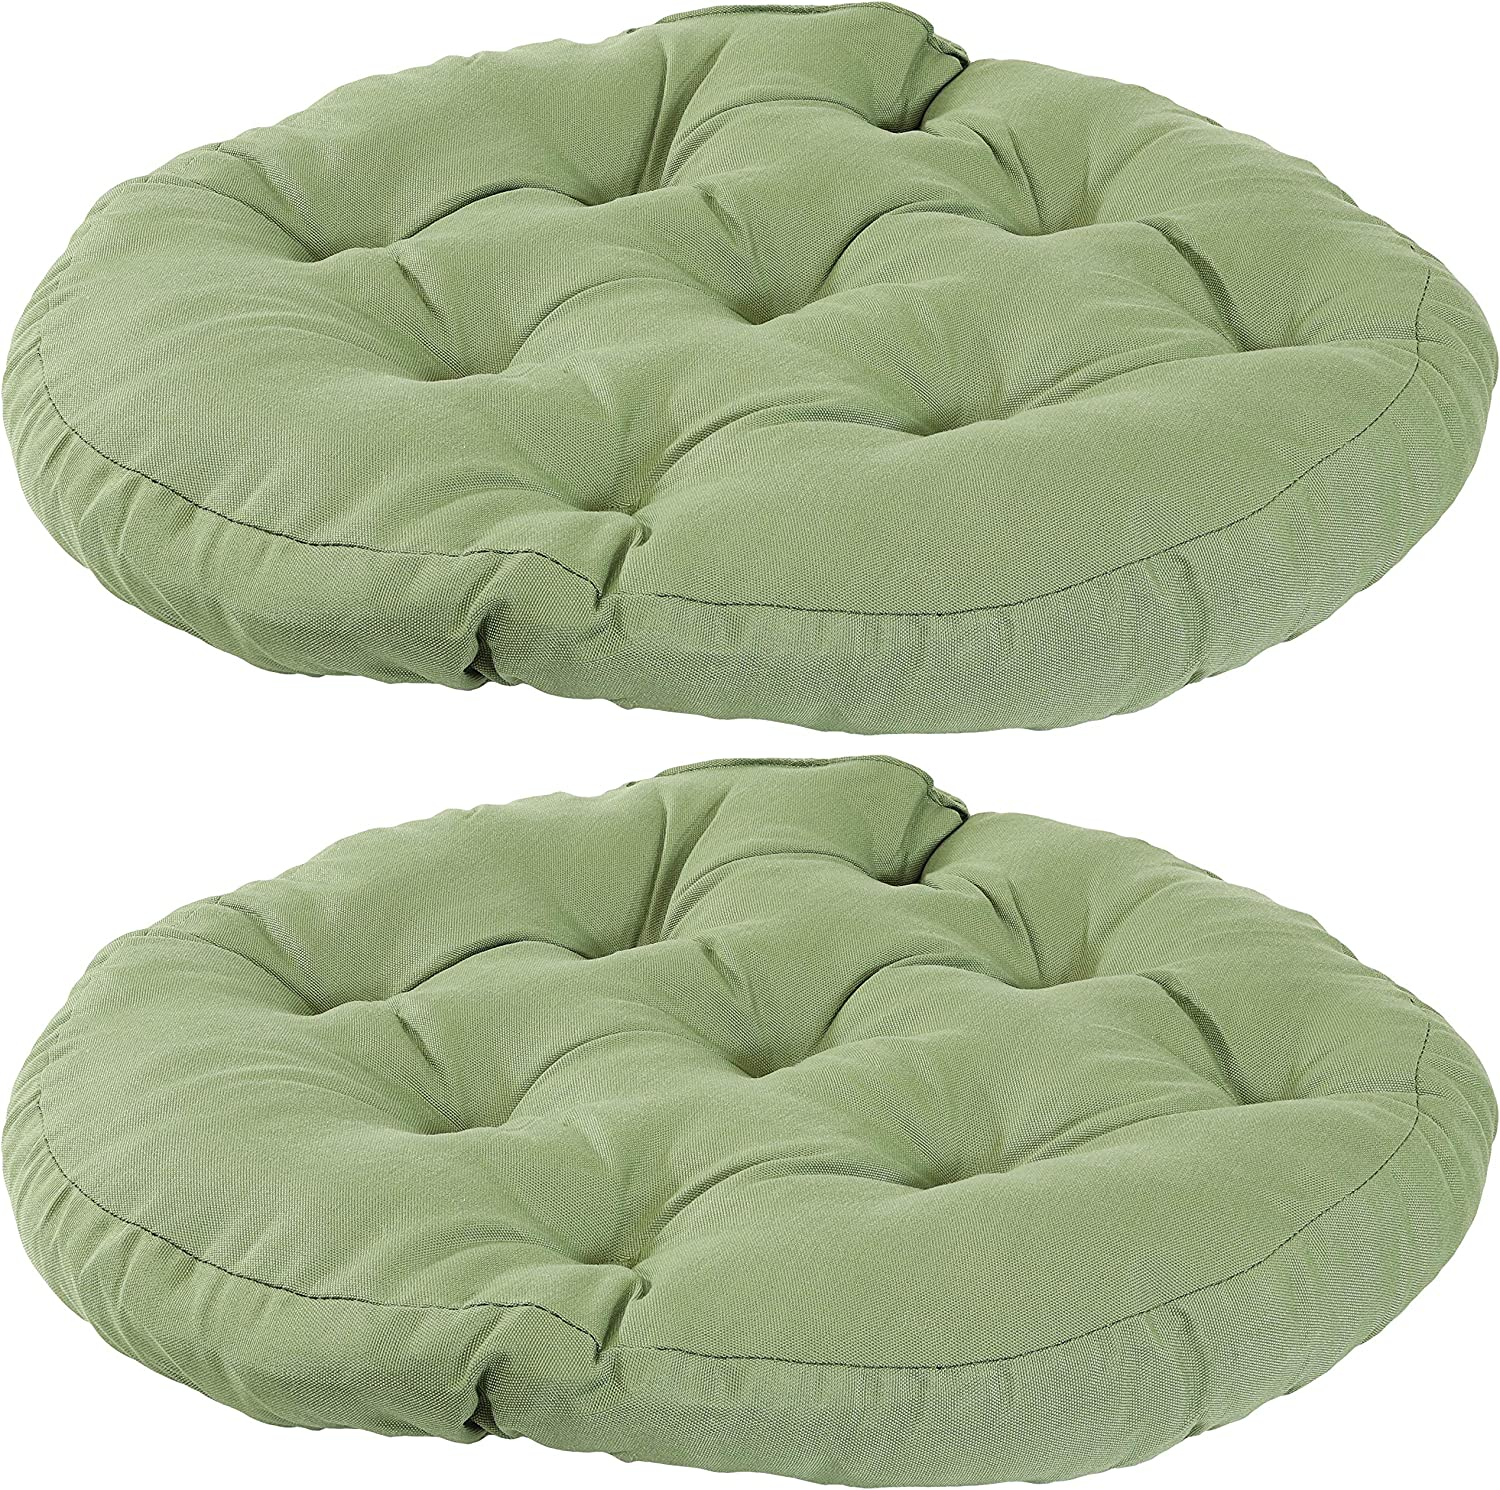 Sunnydaze Tufted Large Round Floor Cushion - Set of 2 - Unique Outdoor/Indoor Chair Cushions or Meditation Cushions - 300D Olefin with Polyester Fill - 22-Inch Diameter - Green